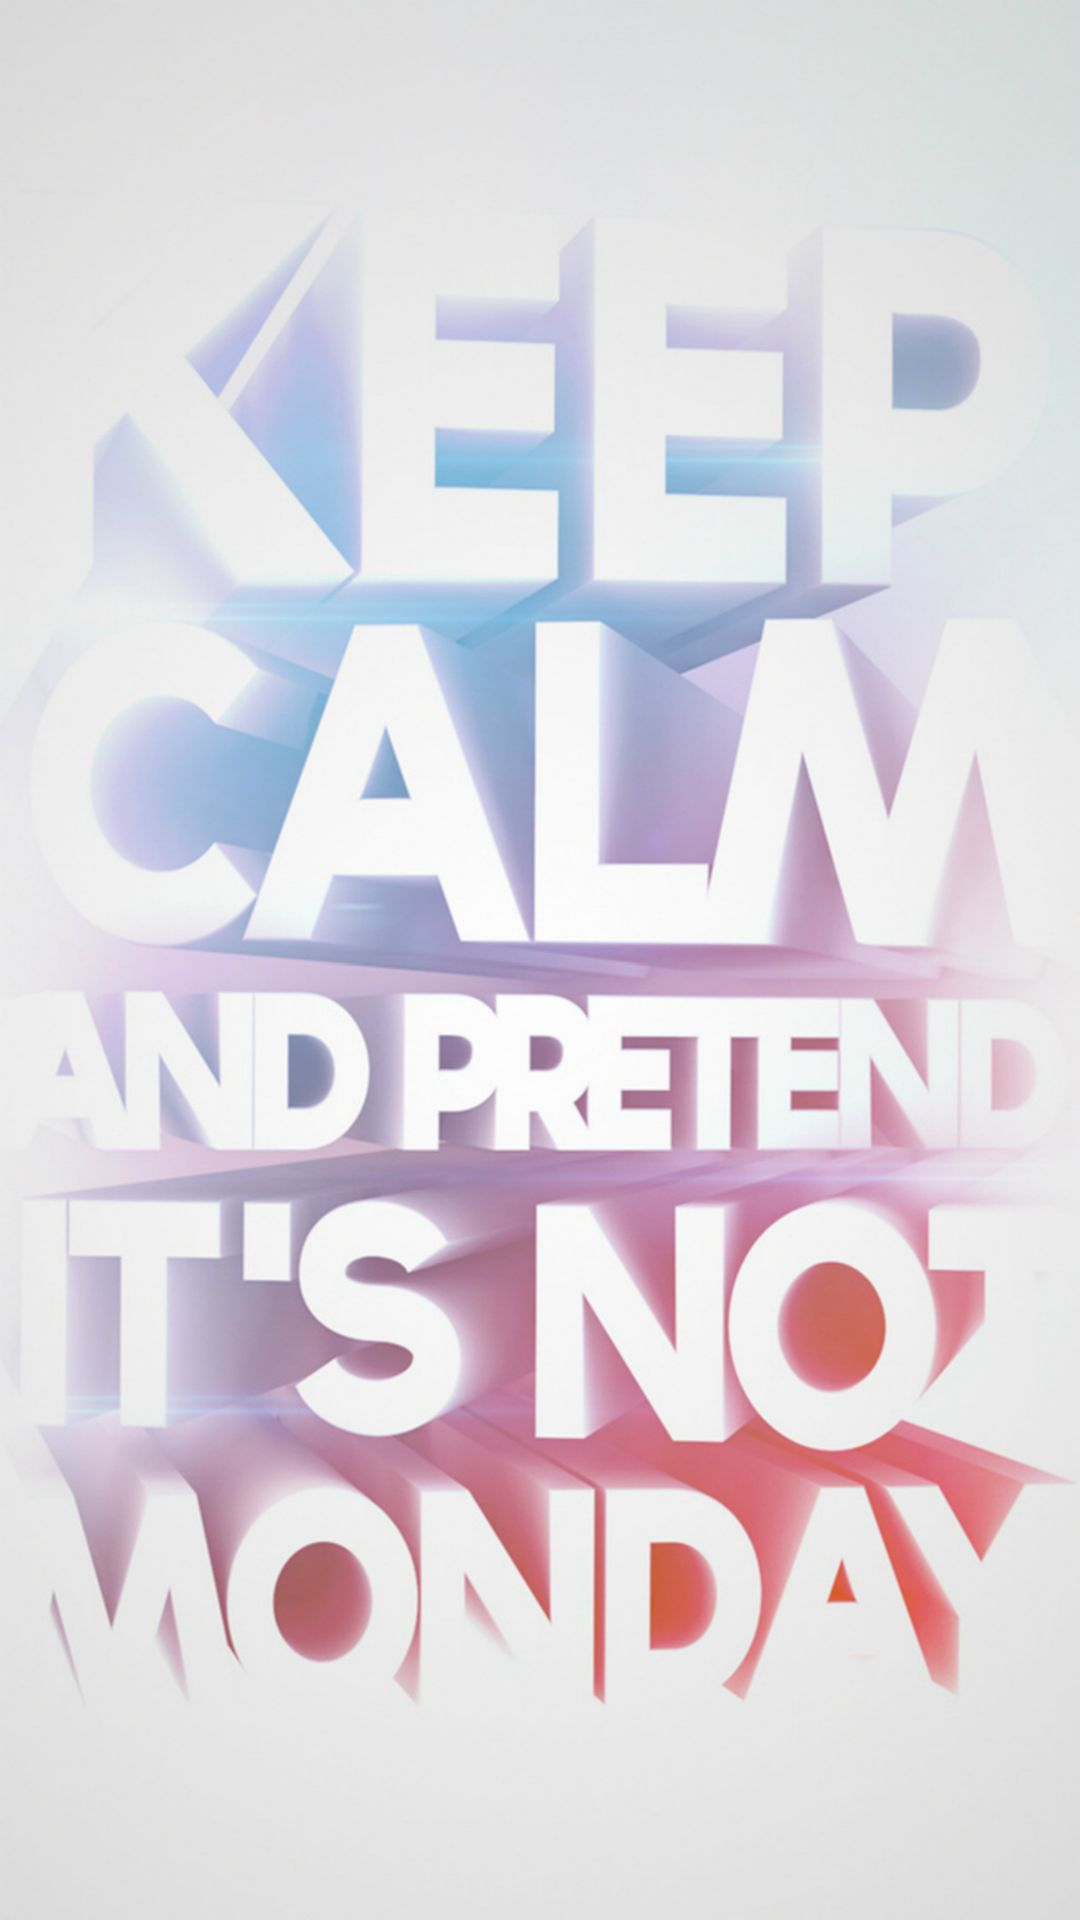 Fun text keep calm and pretend it 39 s not monday iphone 6 - Monday wallpaper ...